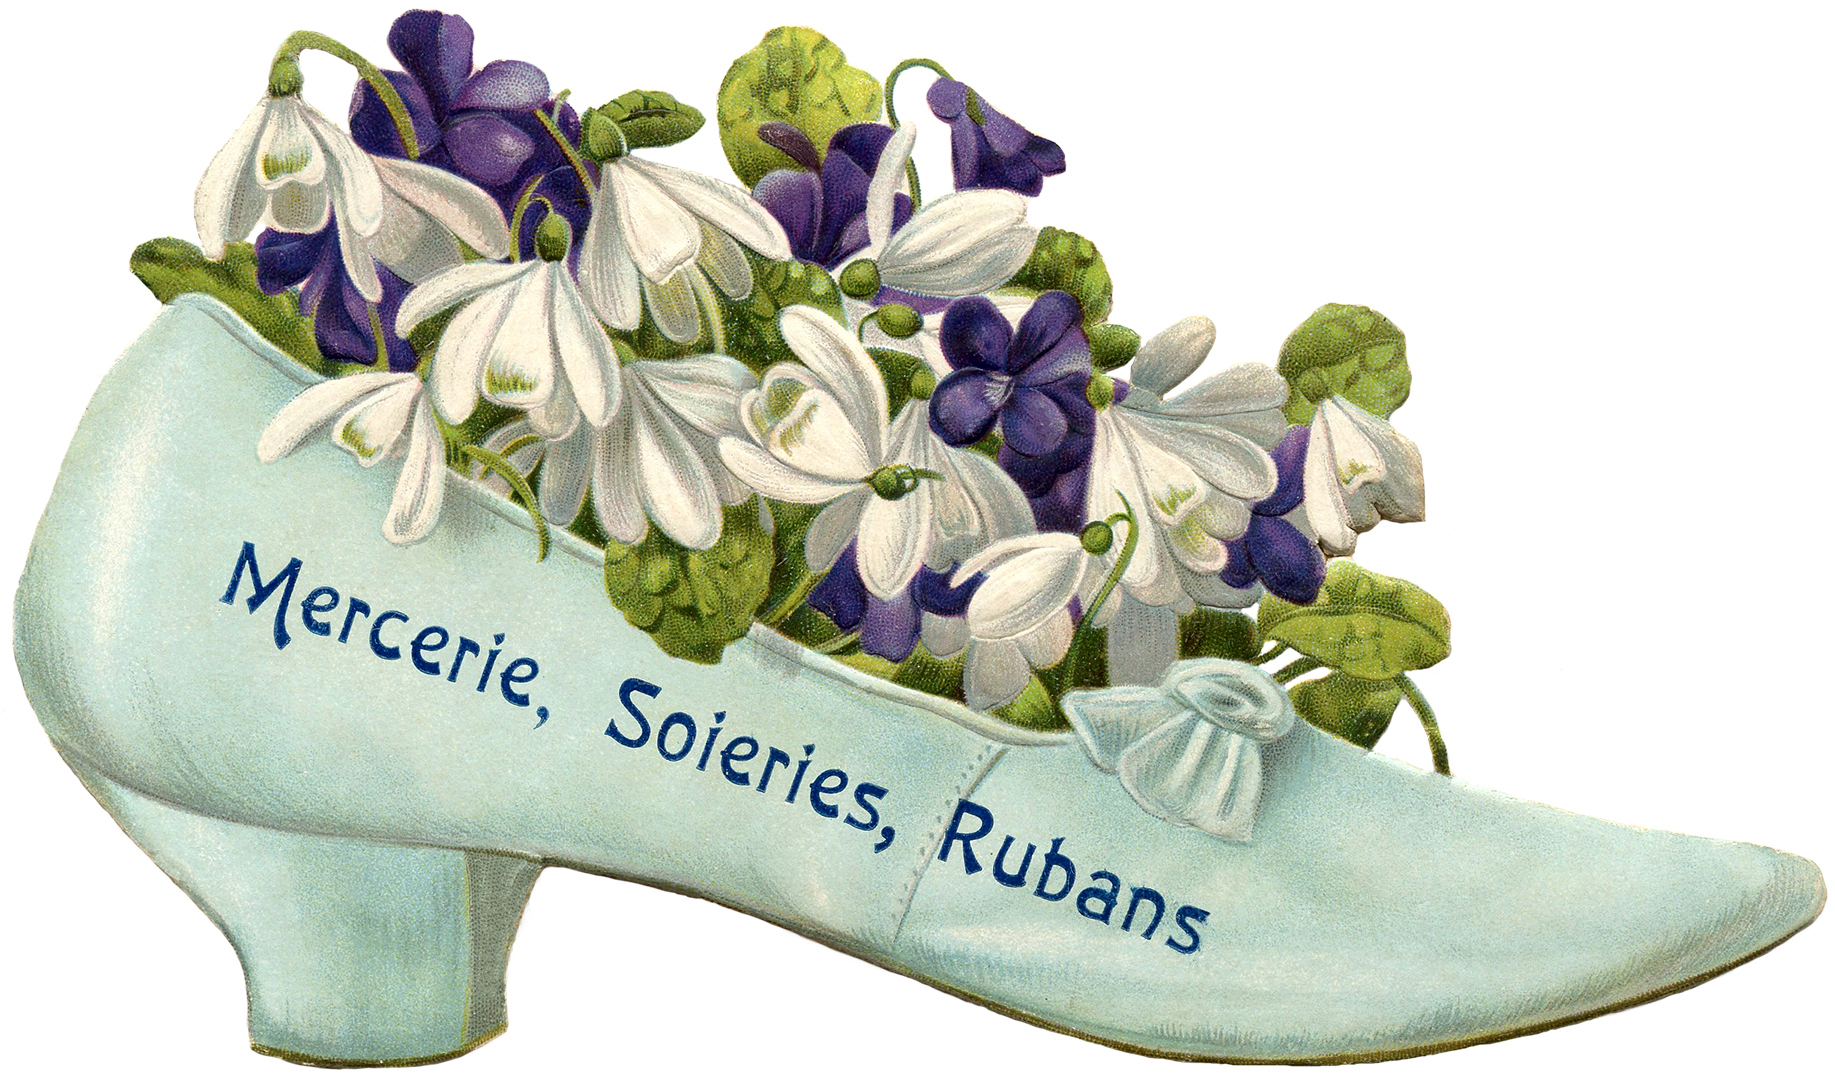 French Vintage Shoe Images - Flowers - The Graphics Fairy